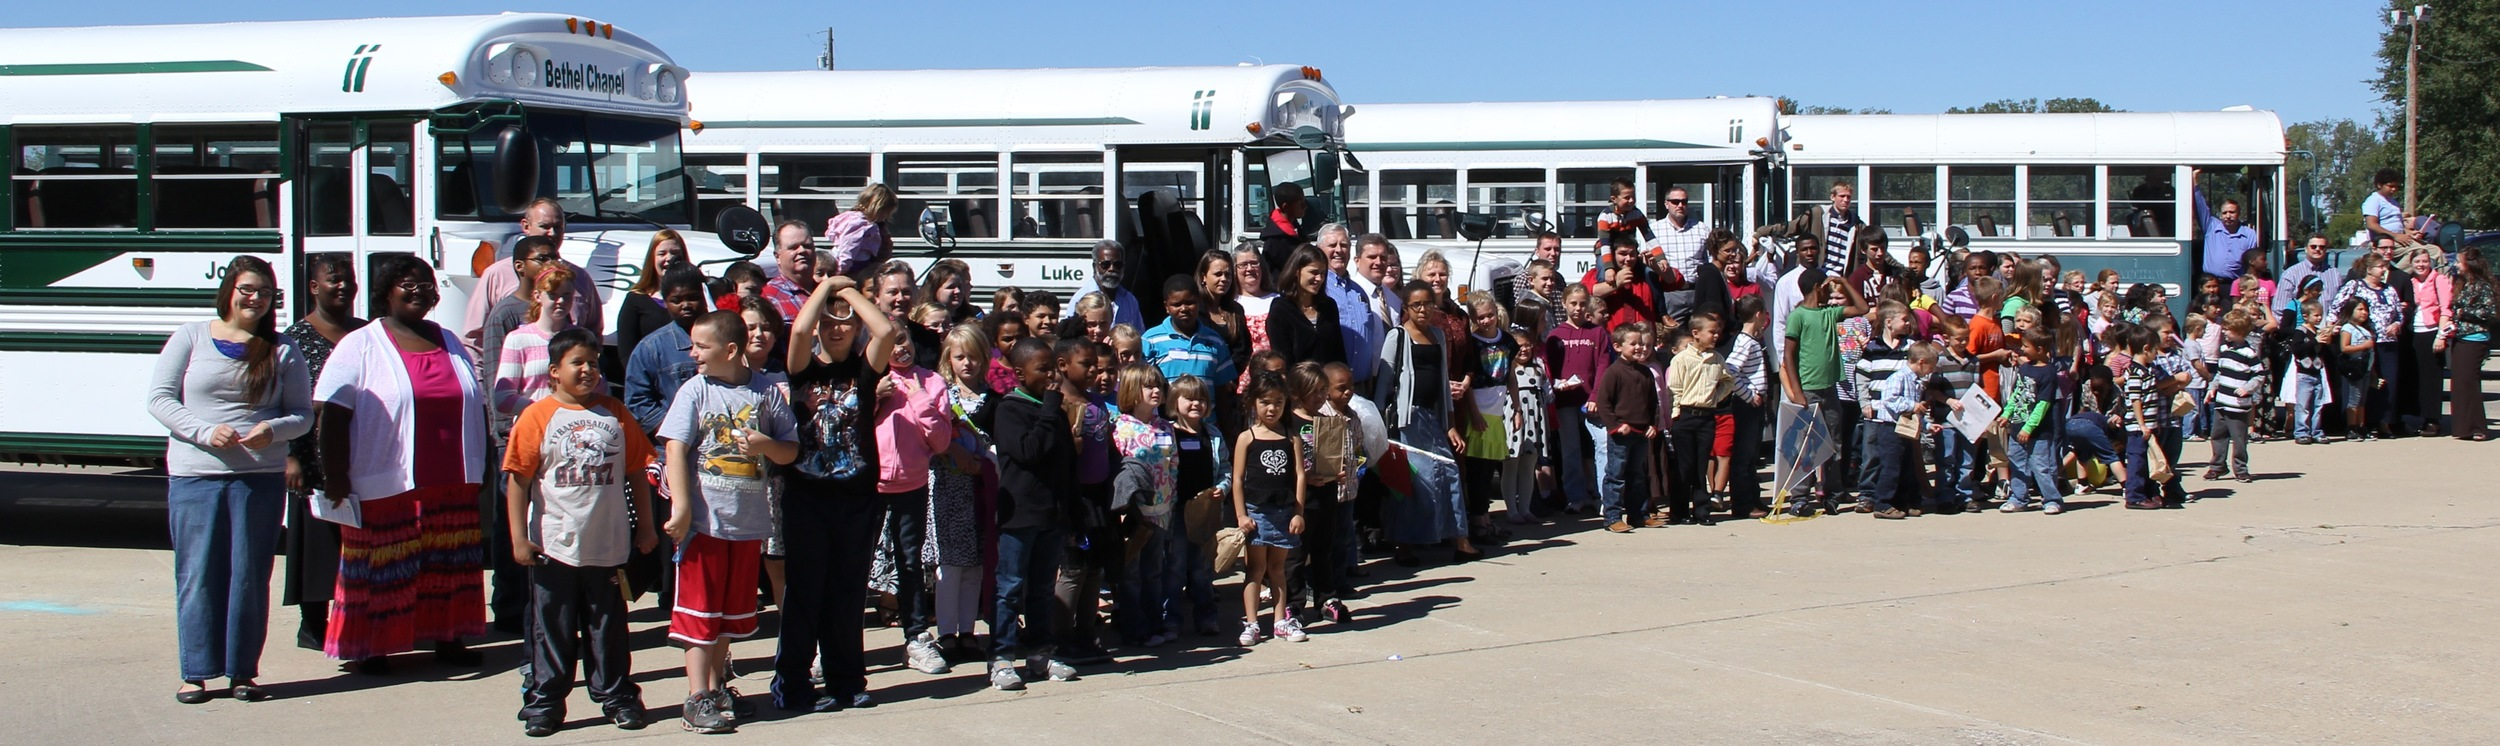 Way to go Bus Ministry!